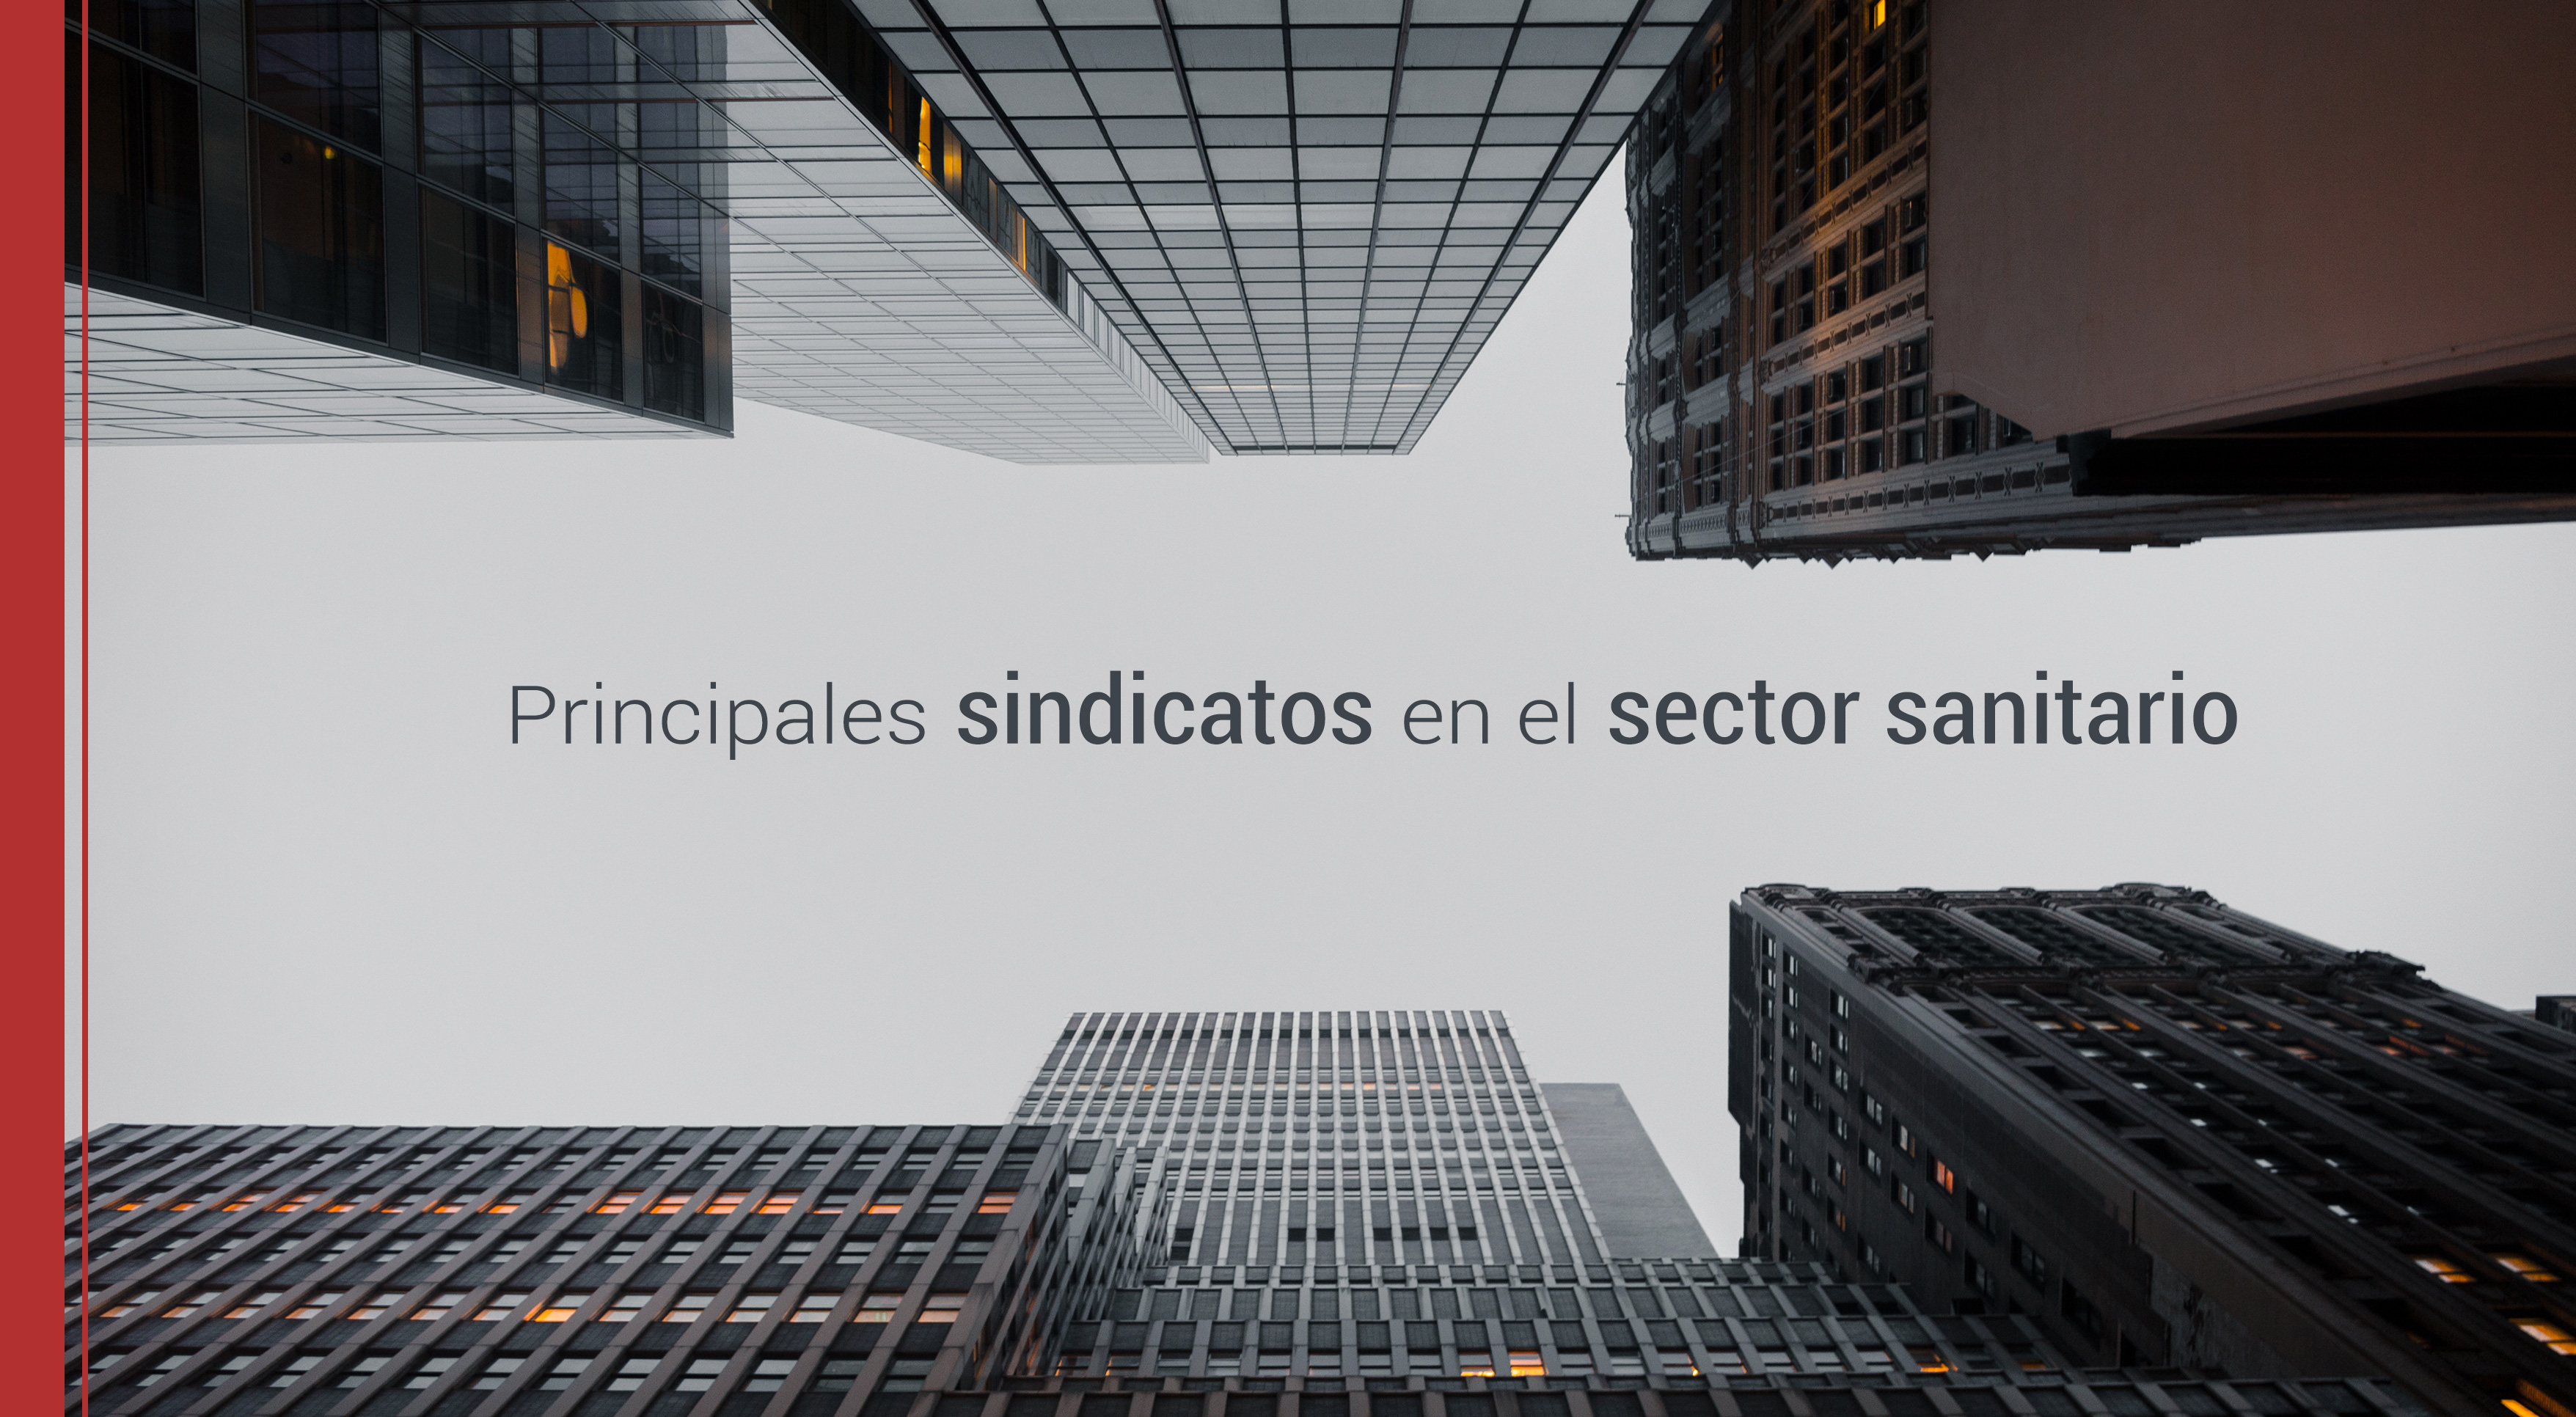 Principales sindicatos en el sector sanitario